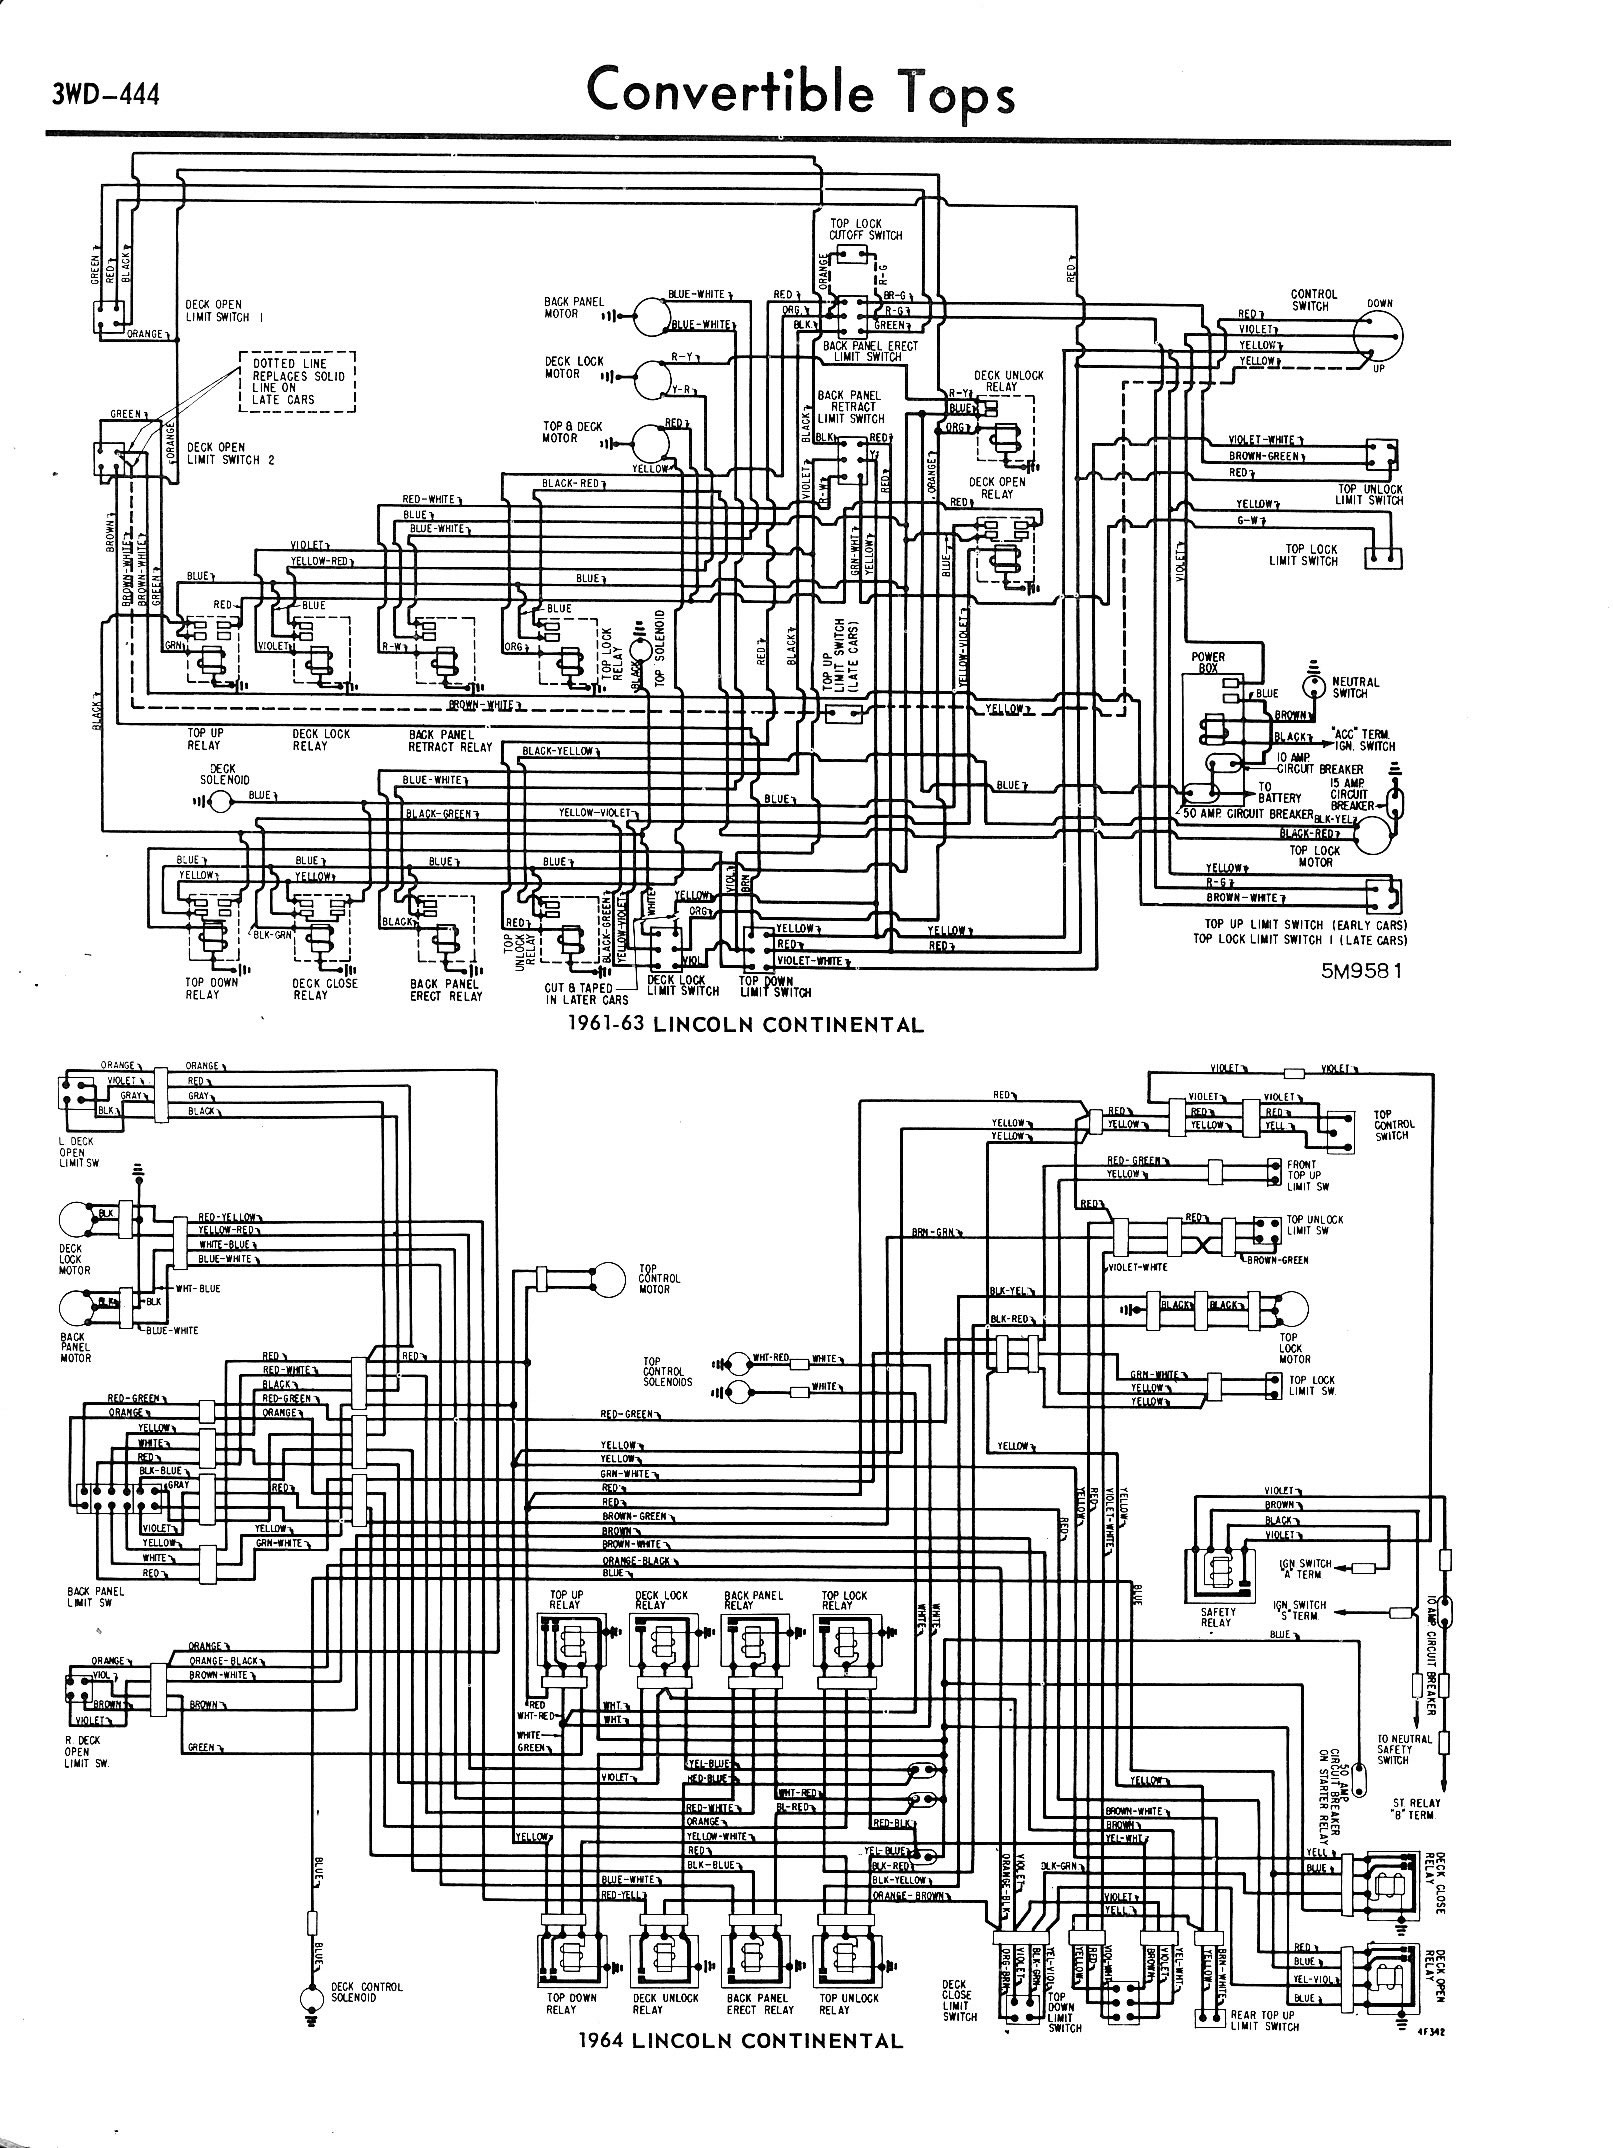 3WD 444_jpg 1966 lincoln continental wiring diagram 1970 lincoln continental  at mifinder.co